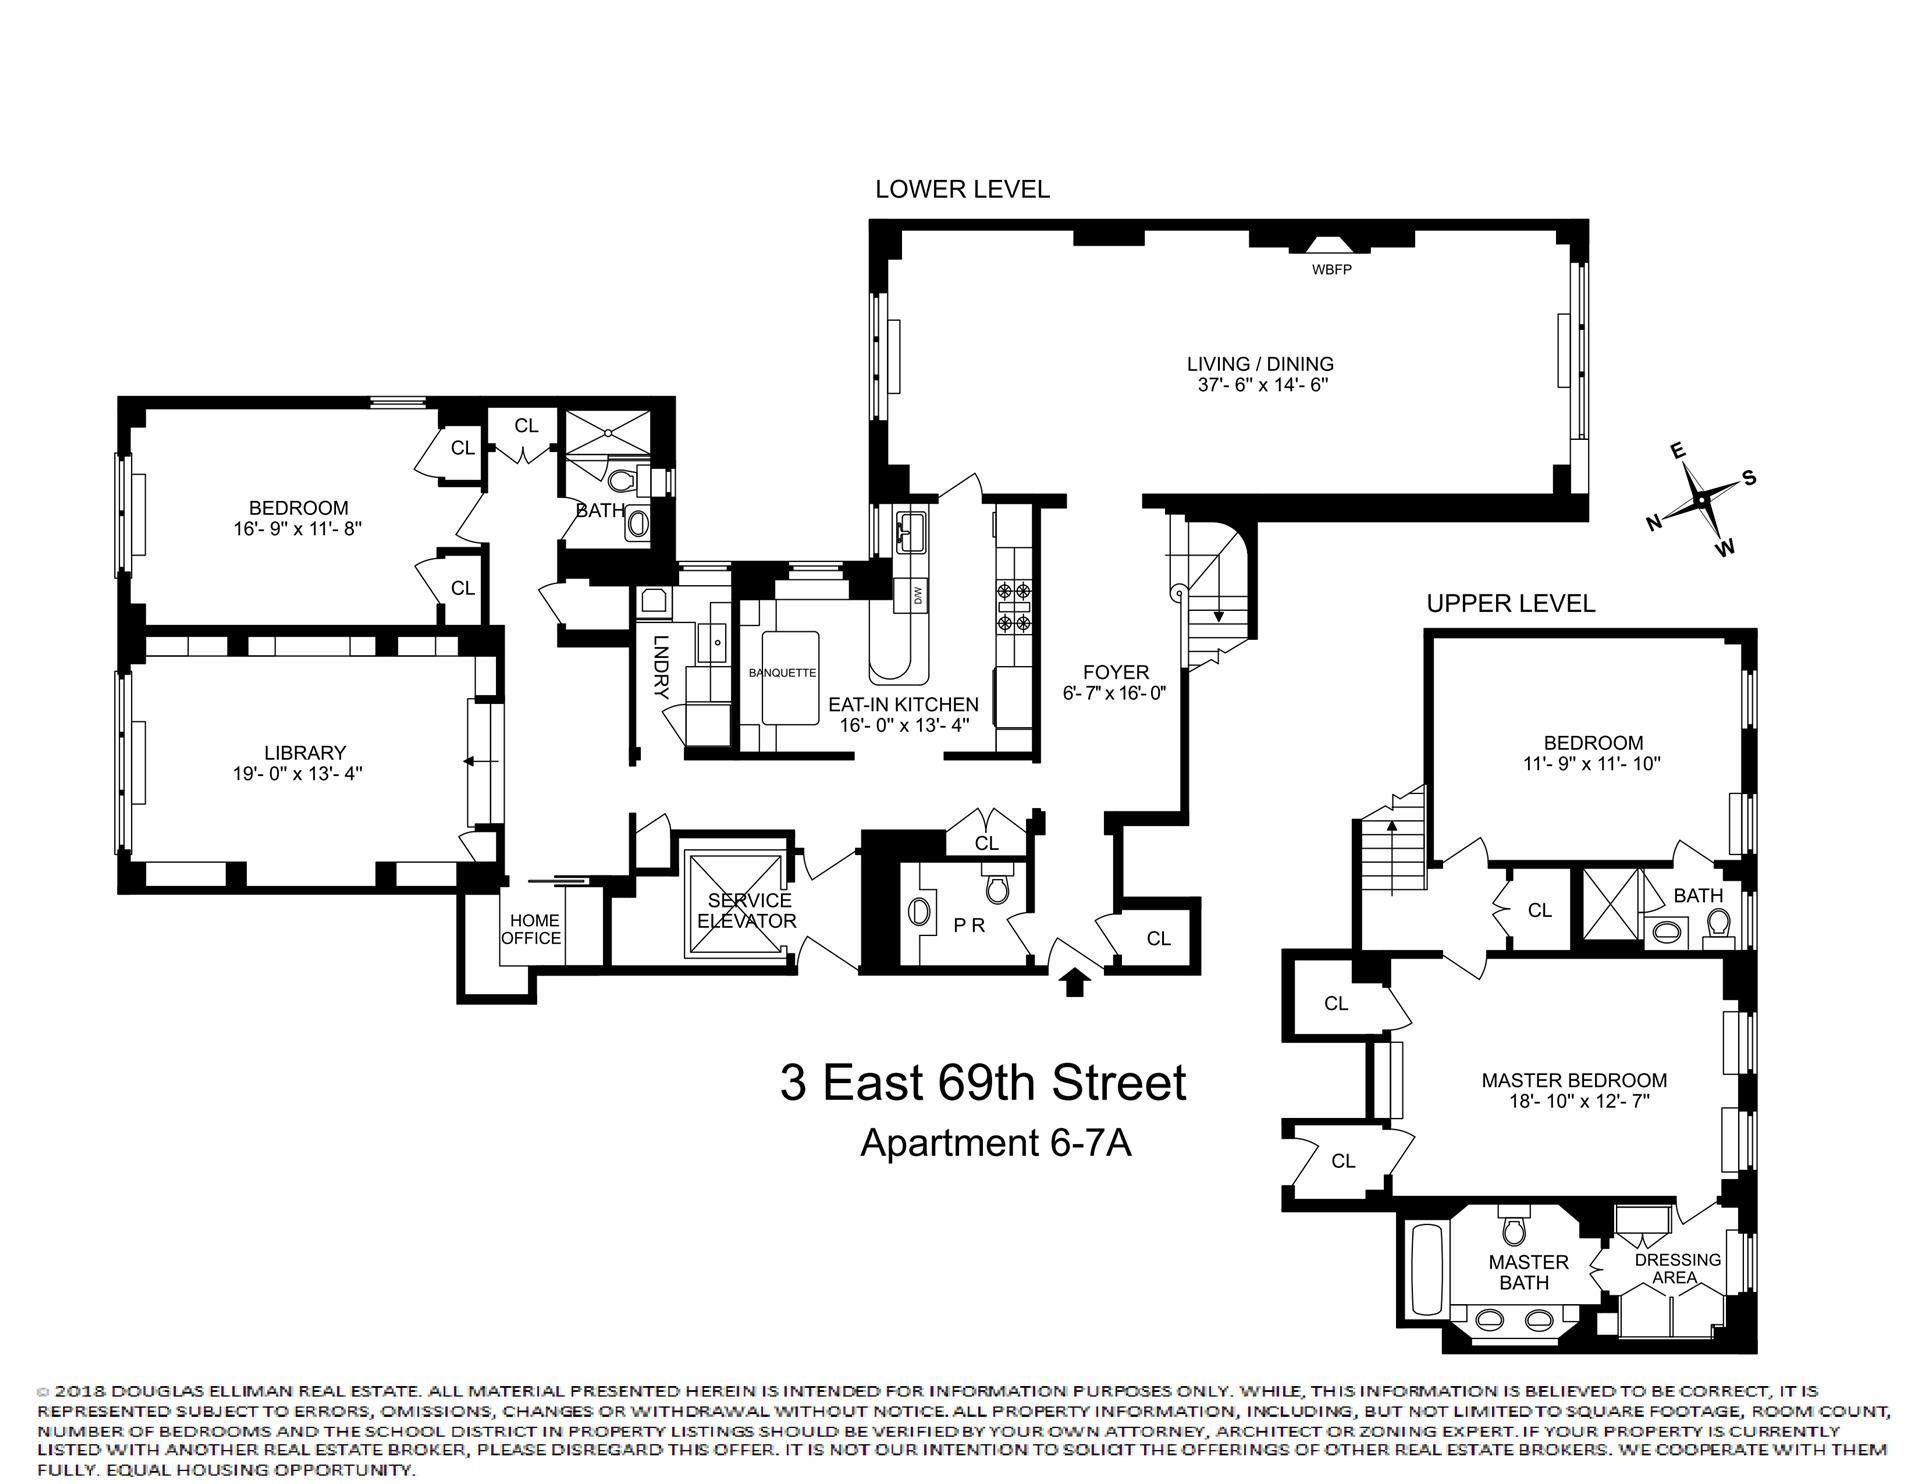 Floor plan of 3 East 69th Street, 6/7A - Upper East Side, New York